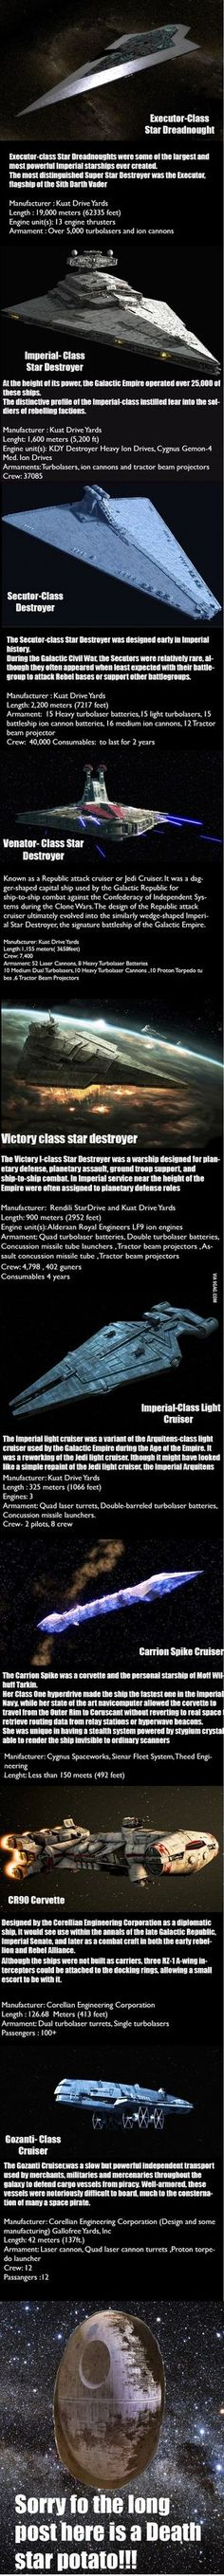 Star Wars Imperial ships part 1